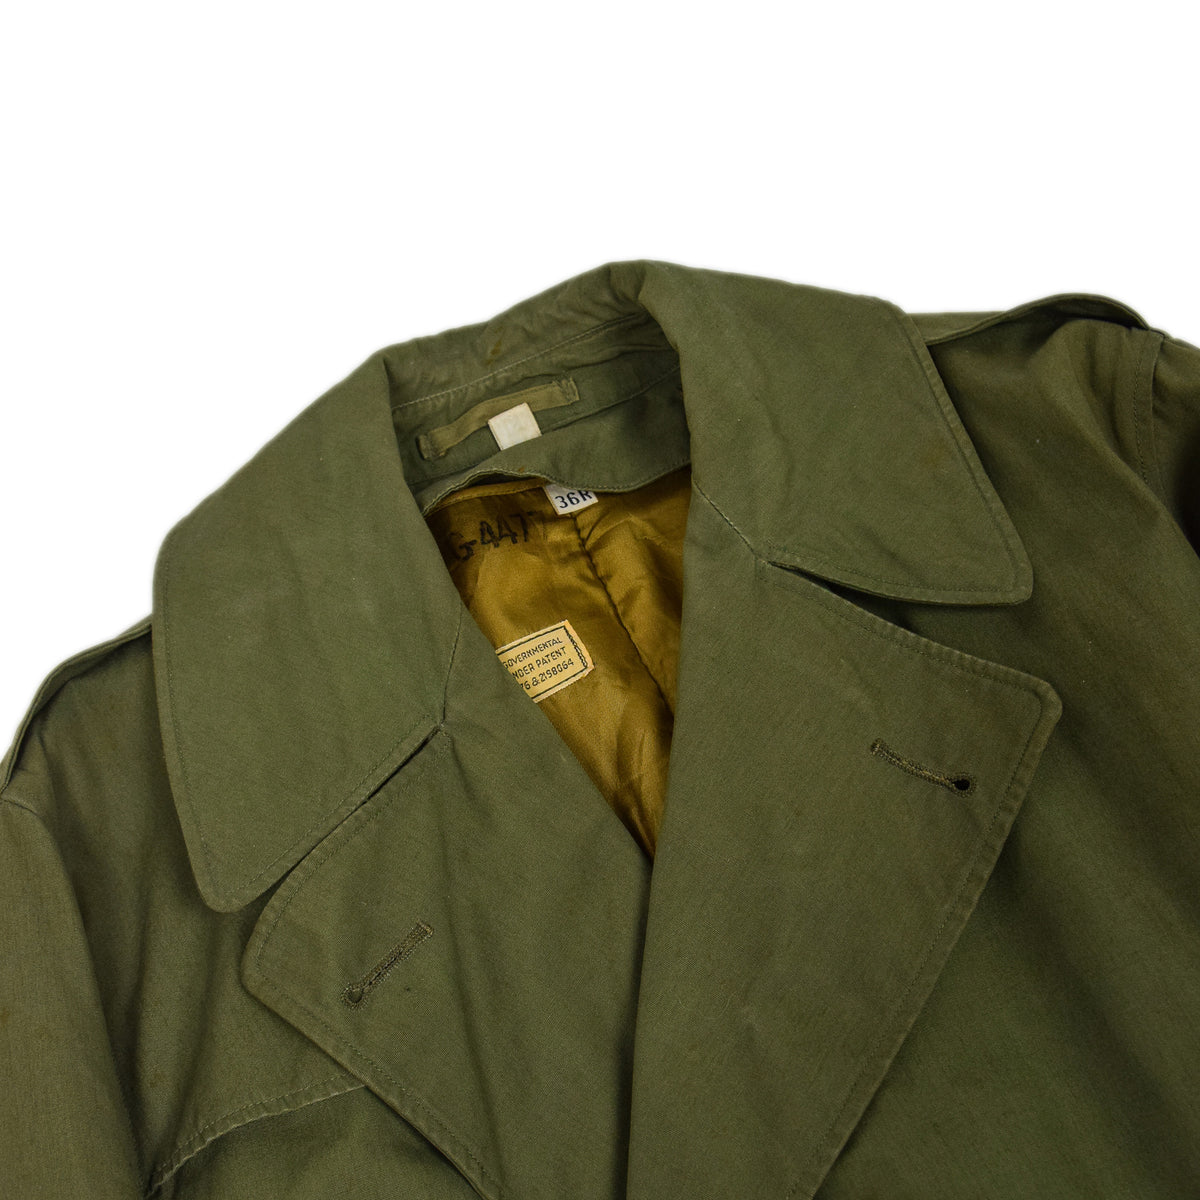 Vintage 40s WWII US Army Officers Field Overcoat Long Trench Coat with Liner M collar